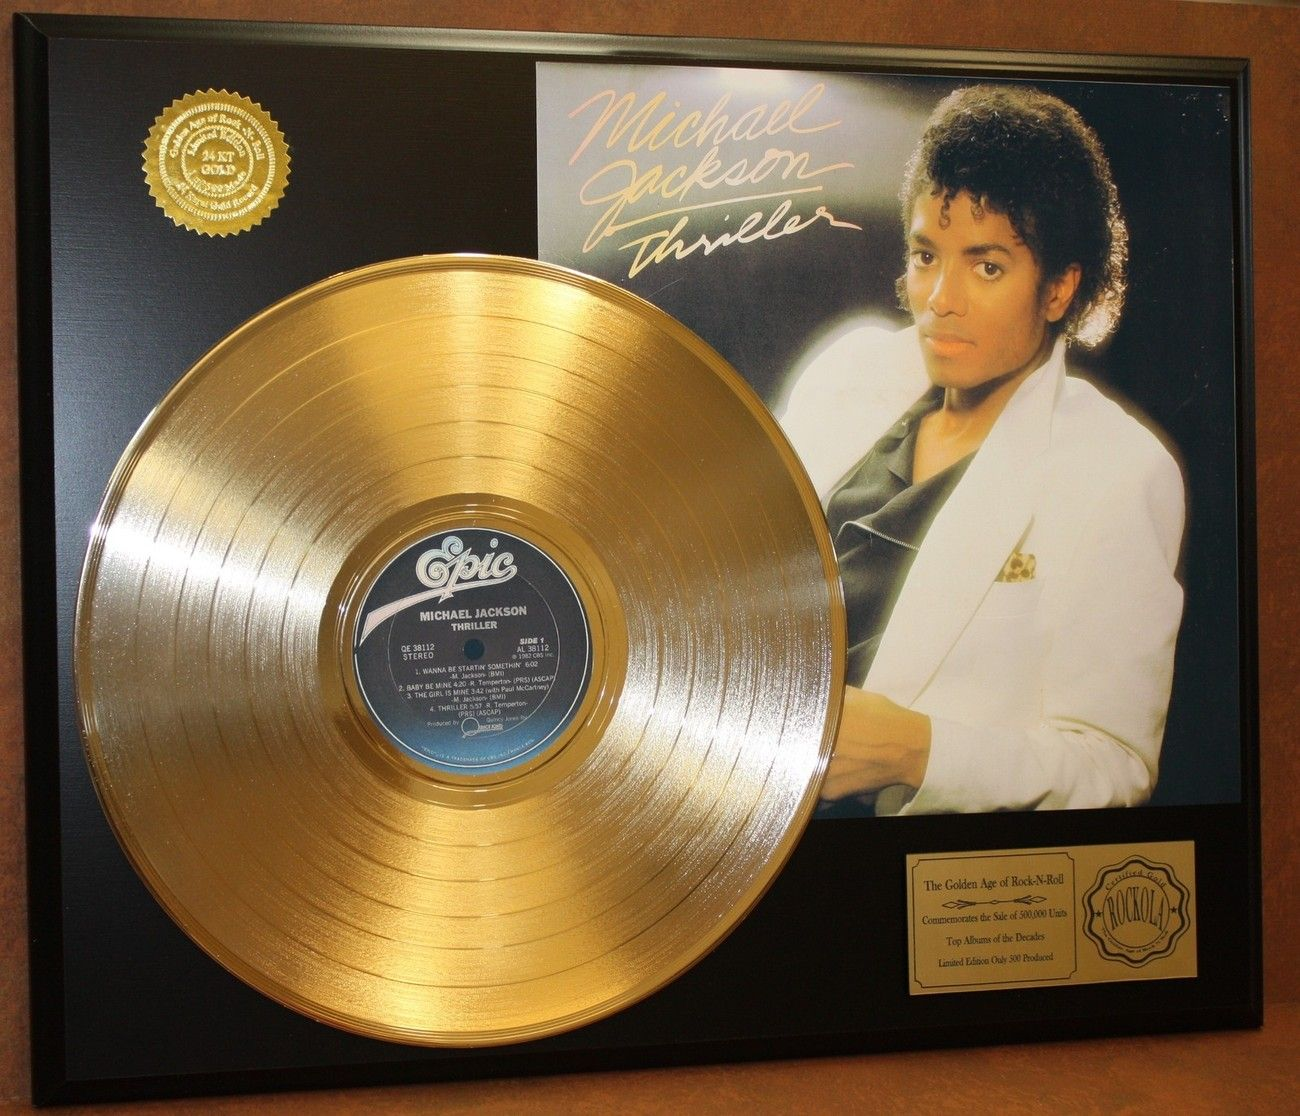 MICHAEL JACKSON//CADRE CD//EDITION LIMITEE//CERTIFICAT DAUTHENTICITE//BAD